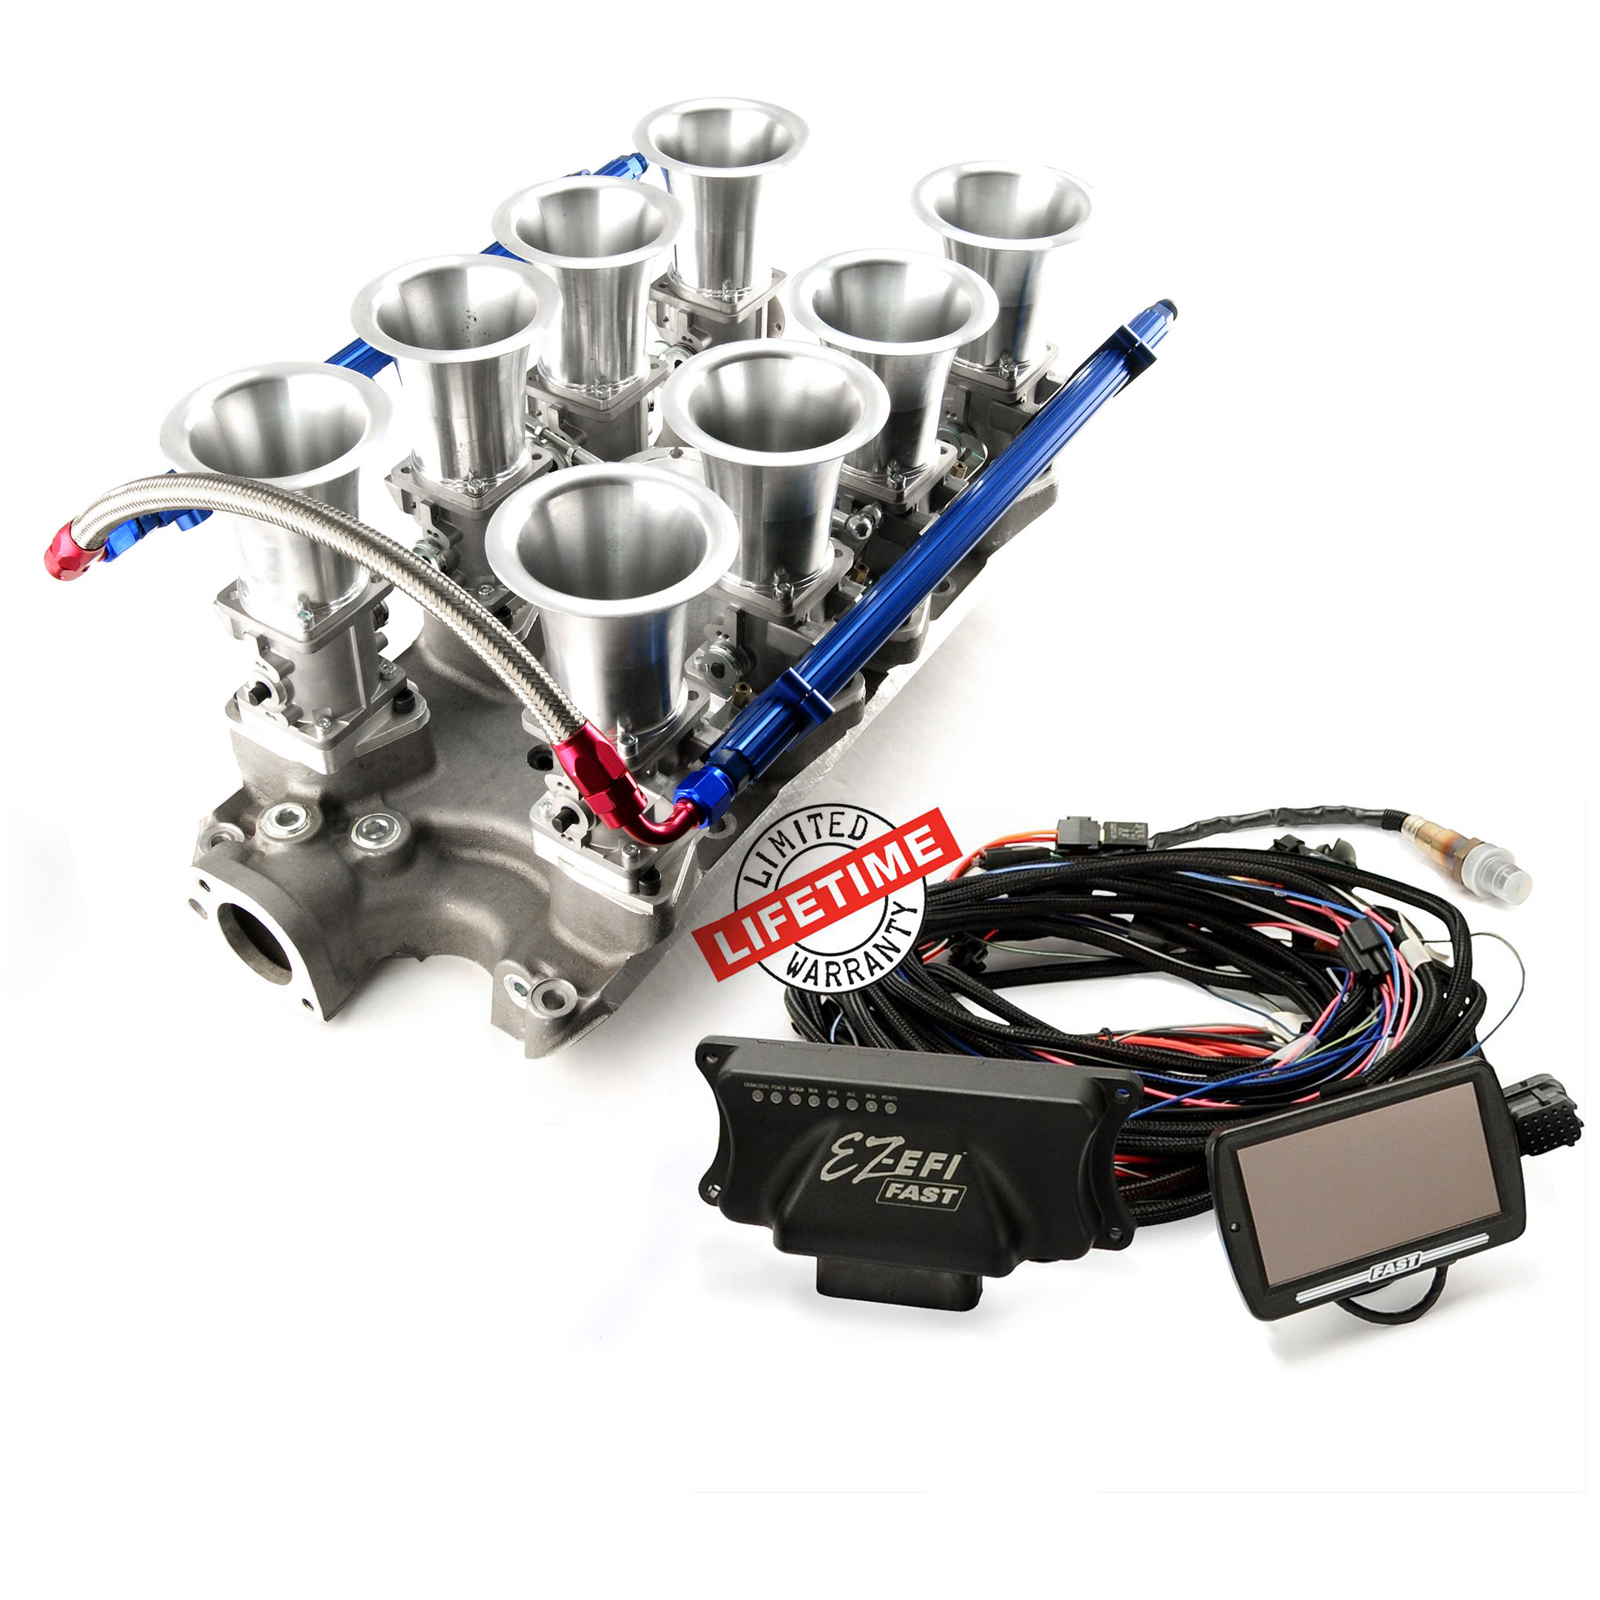 Ford SB 289 302 Windsor Manifold & 30404 FAST EZ-EFI 2.0 Fuel Injection System